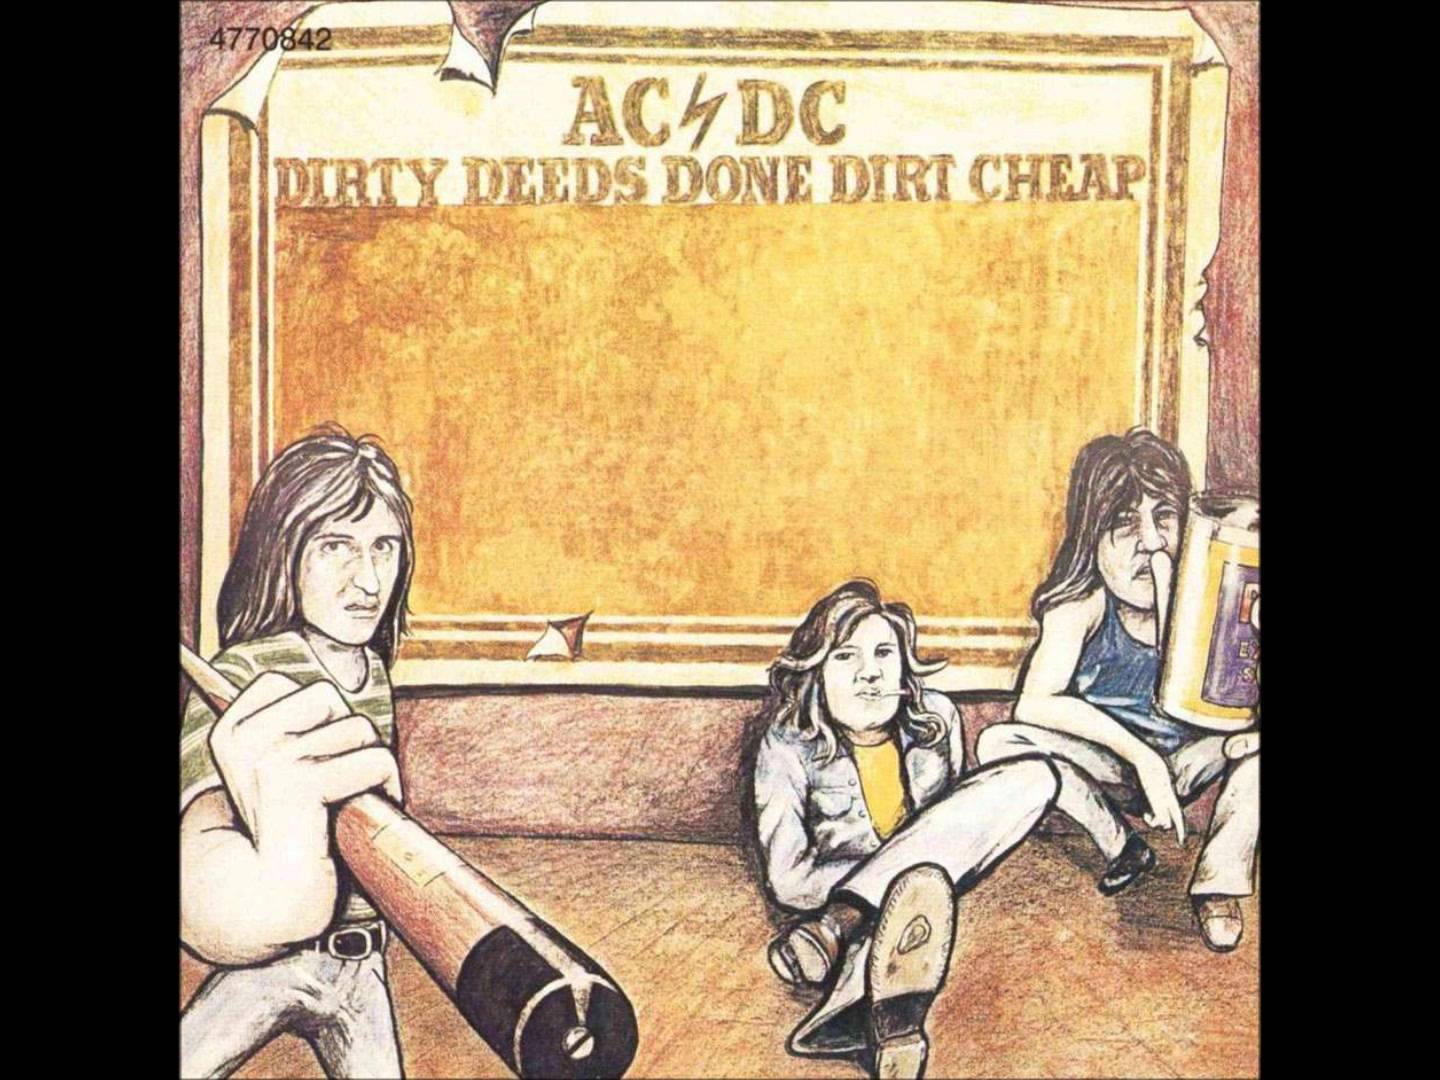 Jun 06,  · Mix - AC/DC - Dirty Deeds Done Dirt Cheap (from Live at River Plate) YouTube AC/DC - Hells Bells (from Live at River Plate) - Duration: AC/DC Official 21,, views.